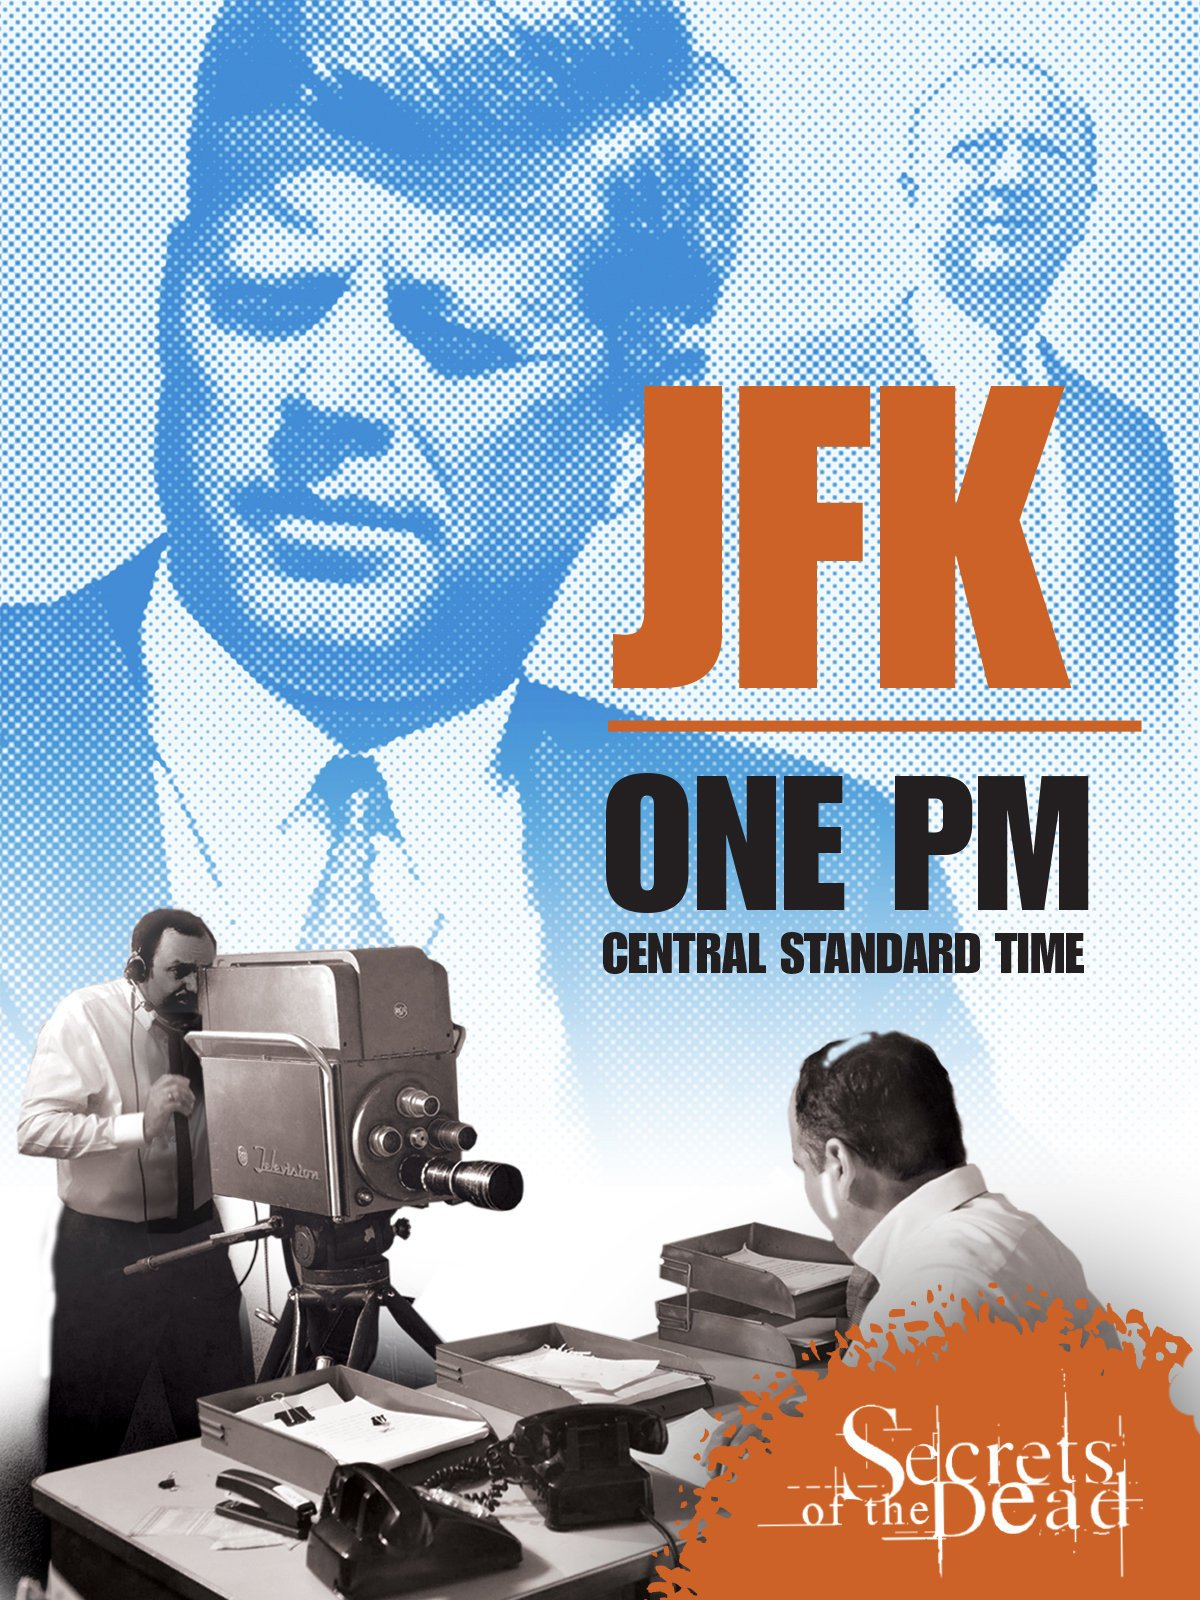 JFK: One PM Central Standard Time